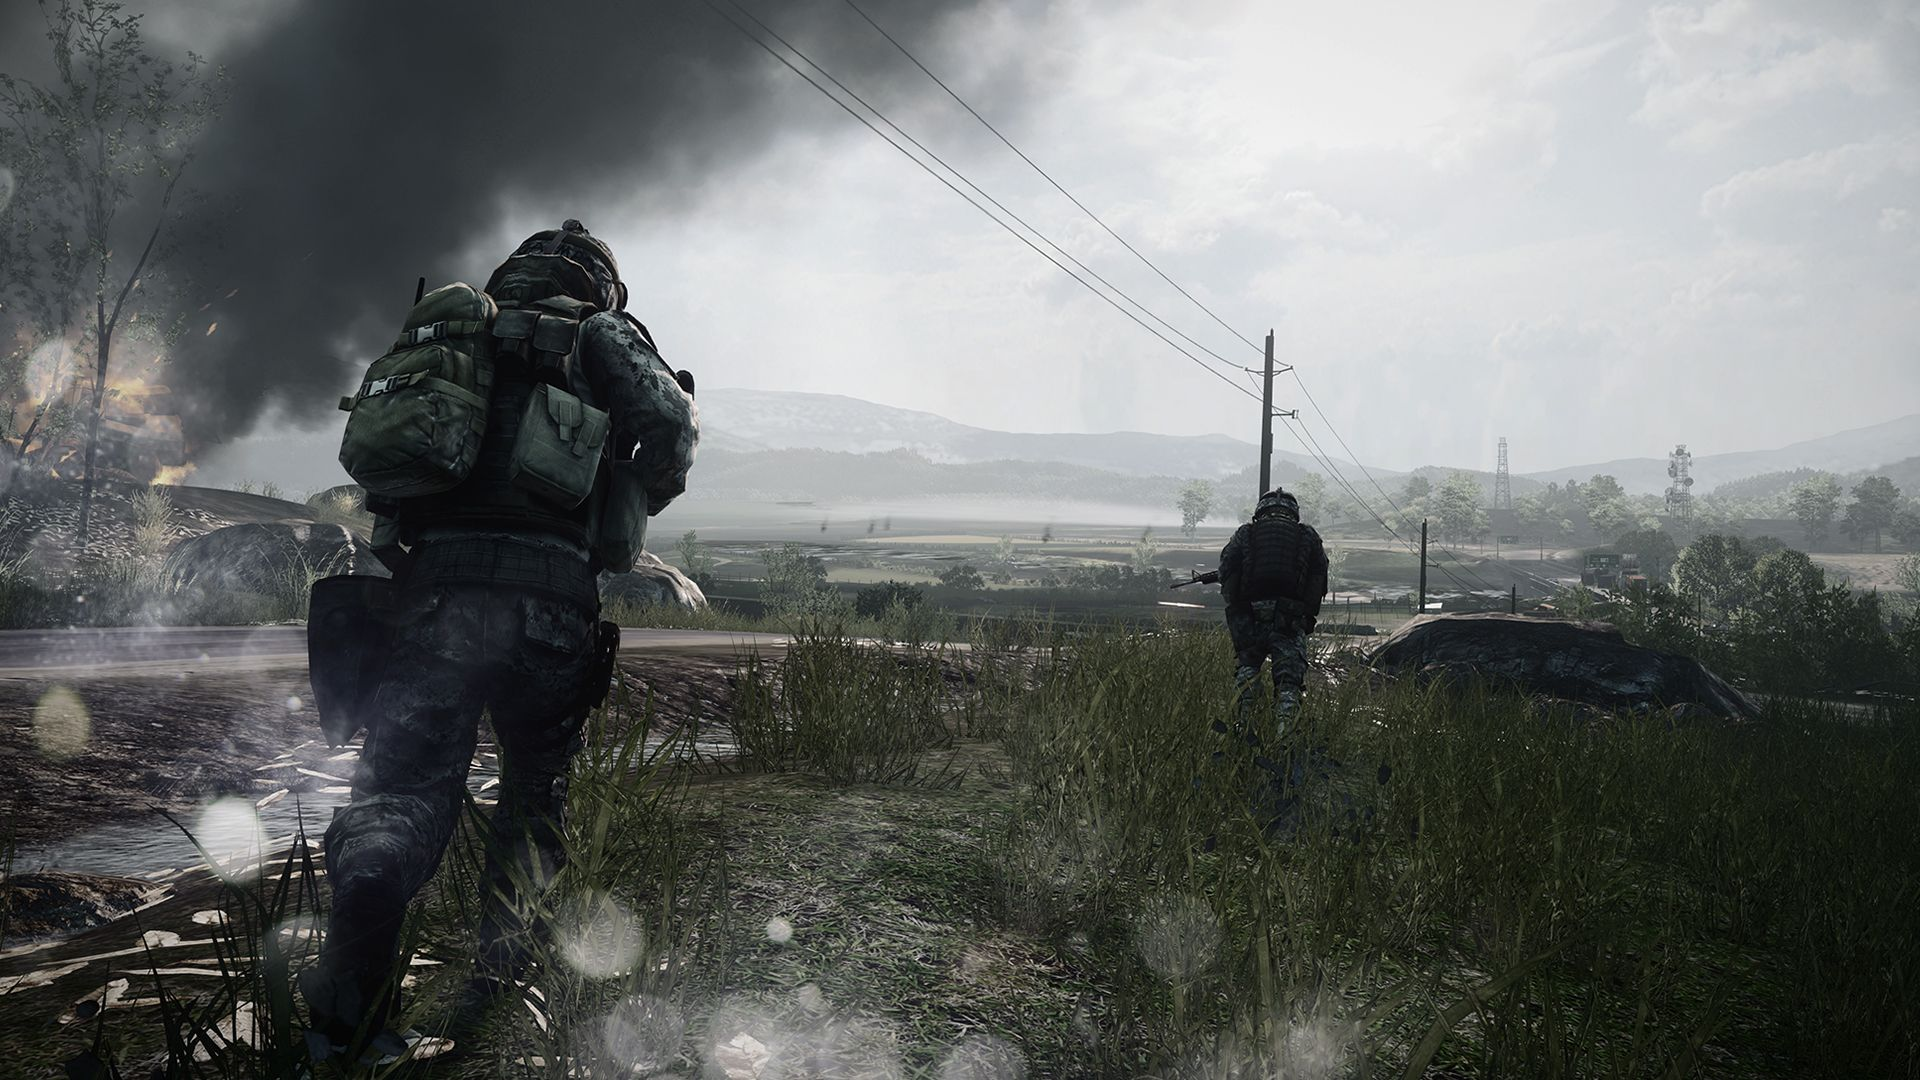 Pin By Ave Baskoro On Somehow It S Cool Battlefield World Of